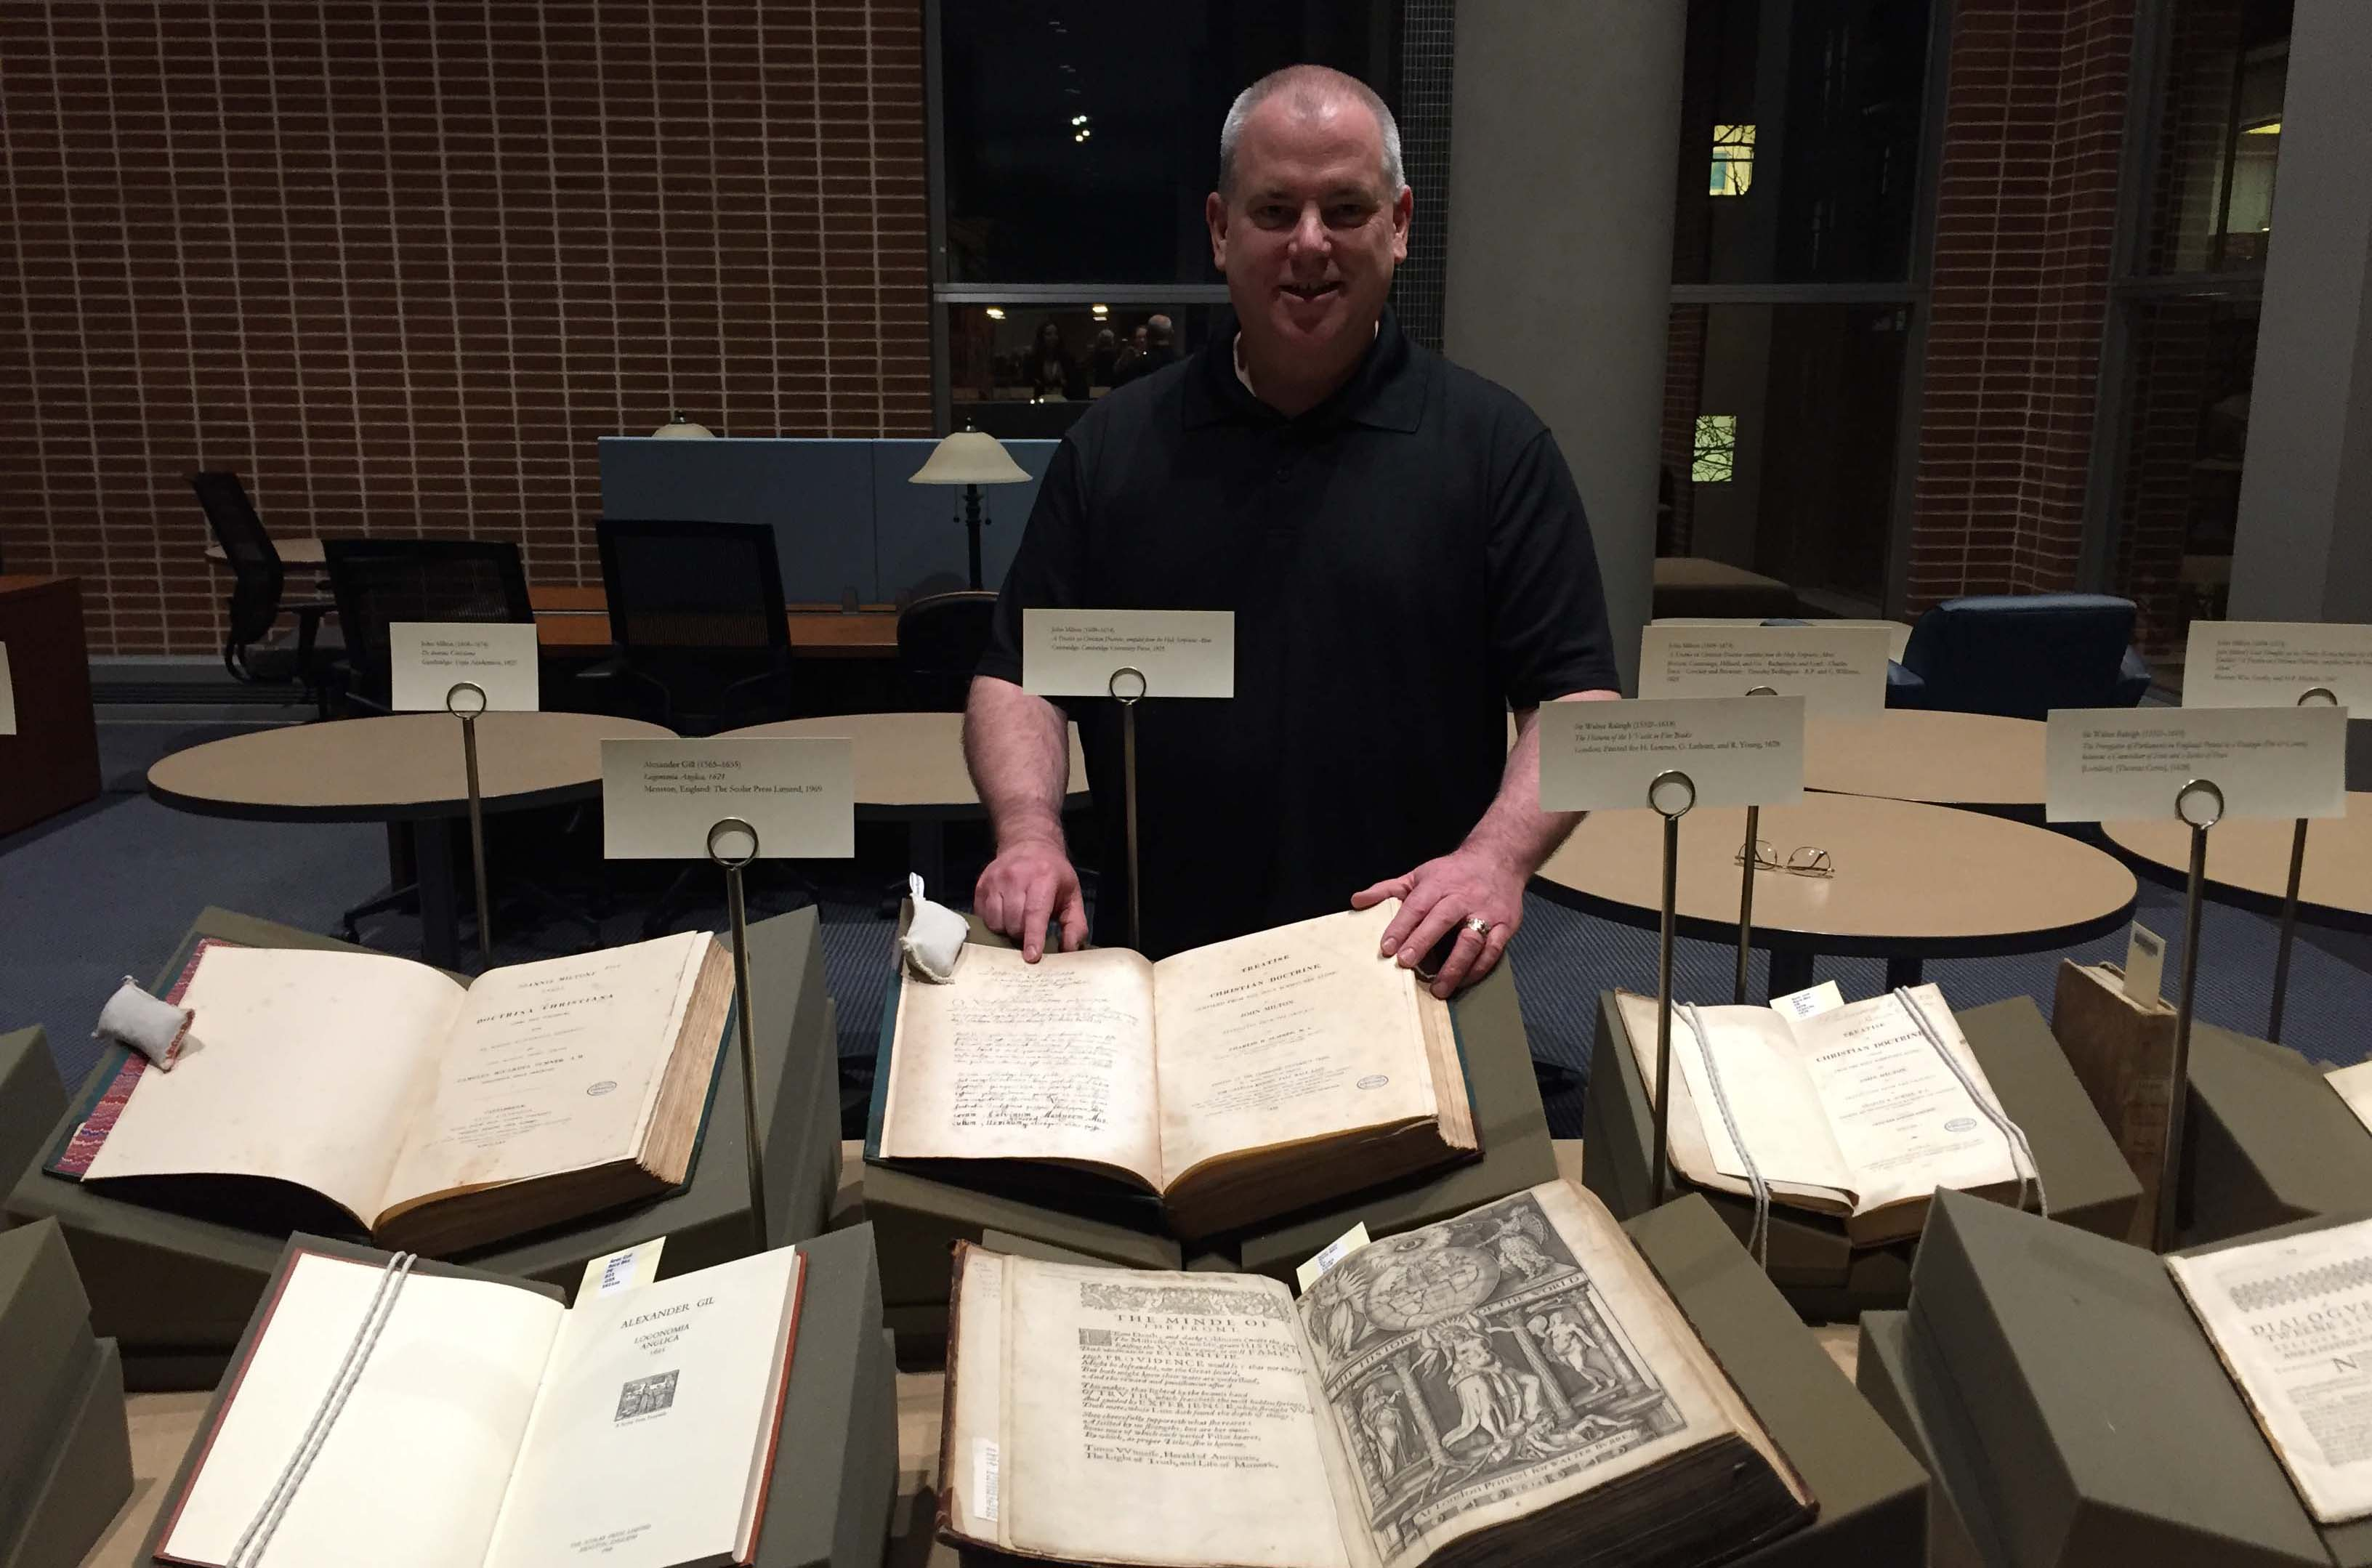 Donor John Geraghty with rare books